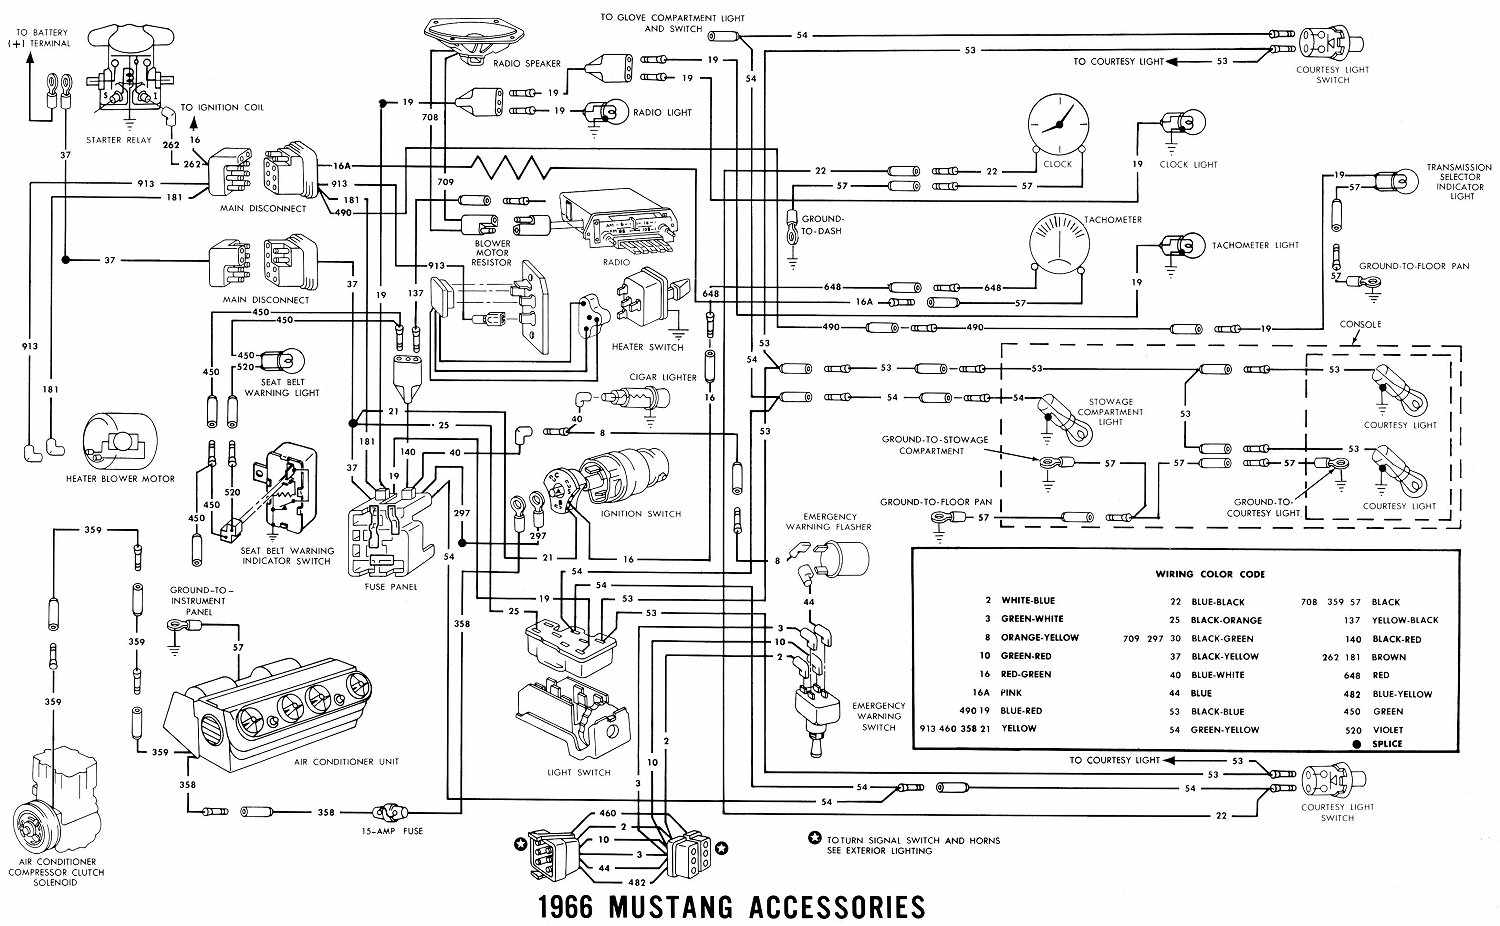 1966    Mustang    Complete Accessories    Wiring       Diagram         Wiring    circuit